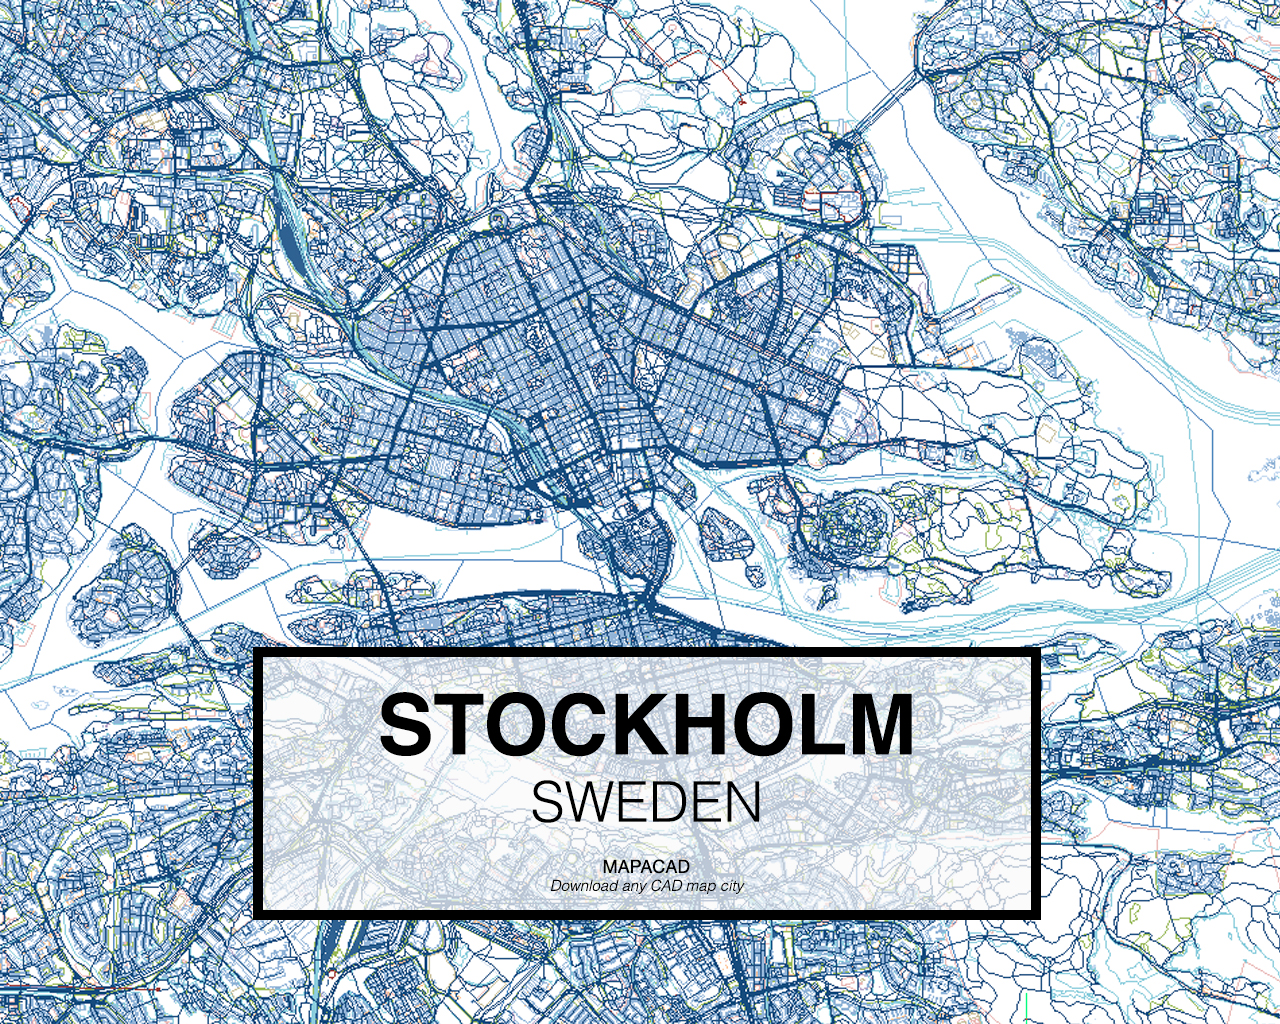 Download stockholm dwg mapacad stockholm sweden 01 mapacad download map cad dwg gumiabroncs Gallery